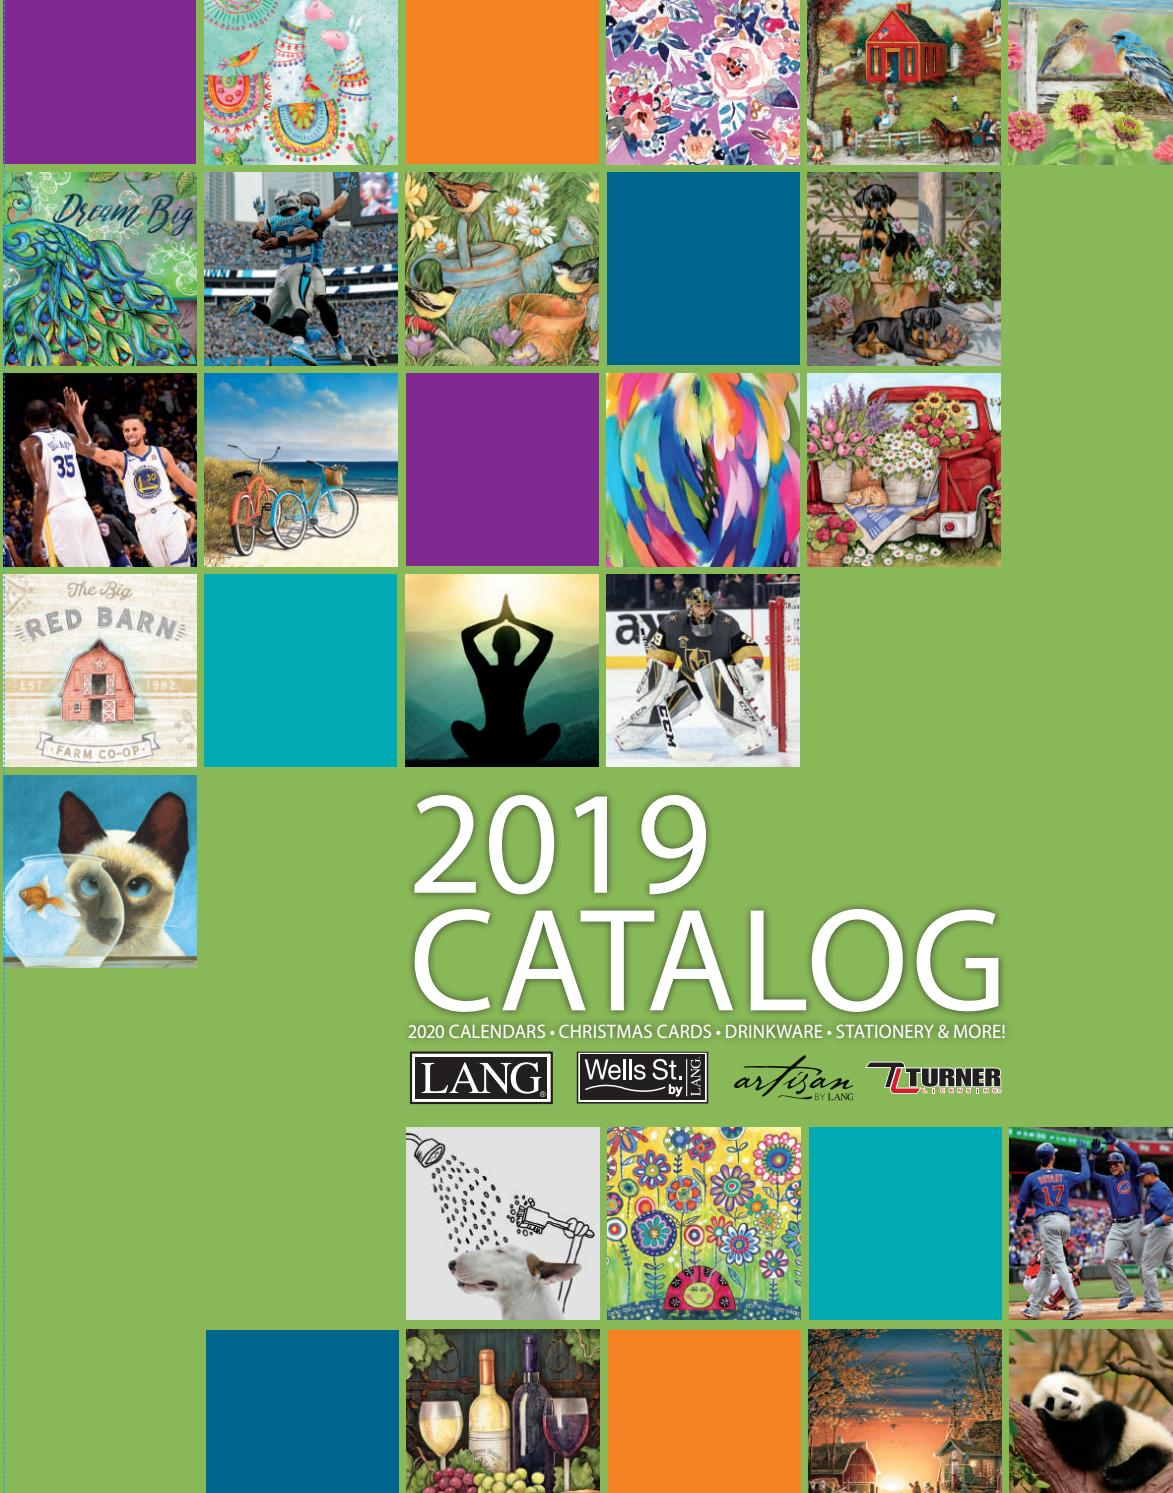 2019 LANG Catalog by The LANG Companies - issuu d24bd06e8